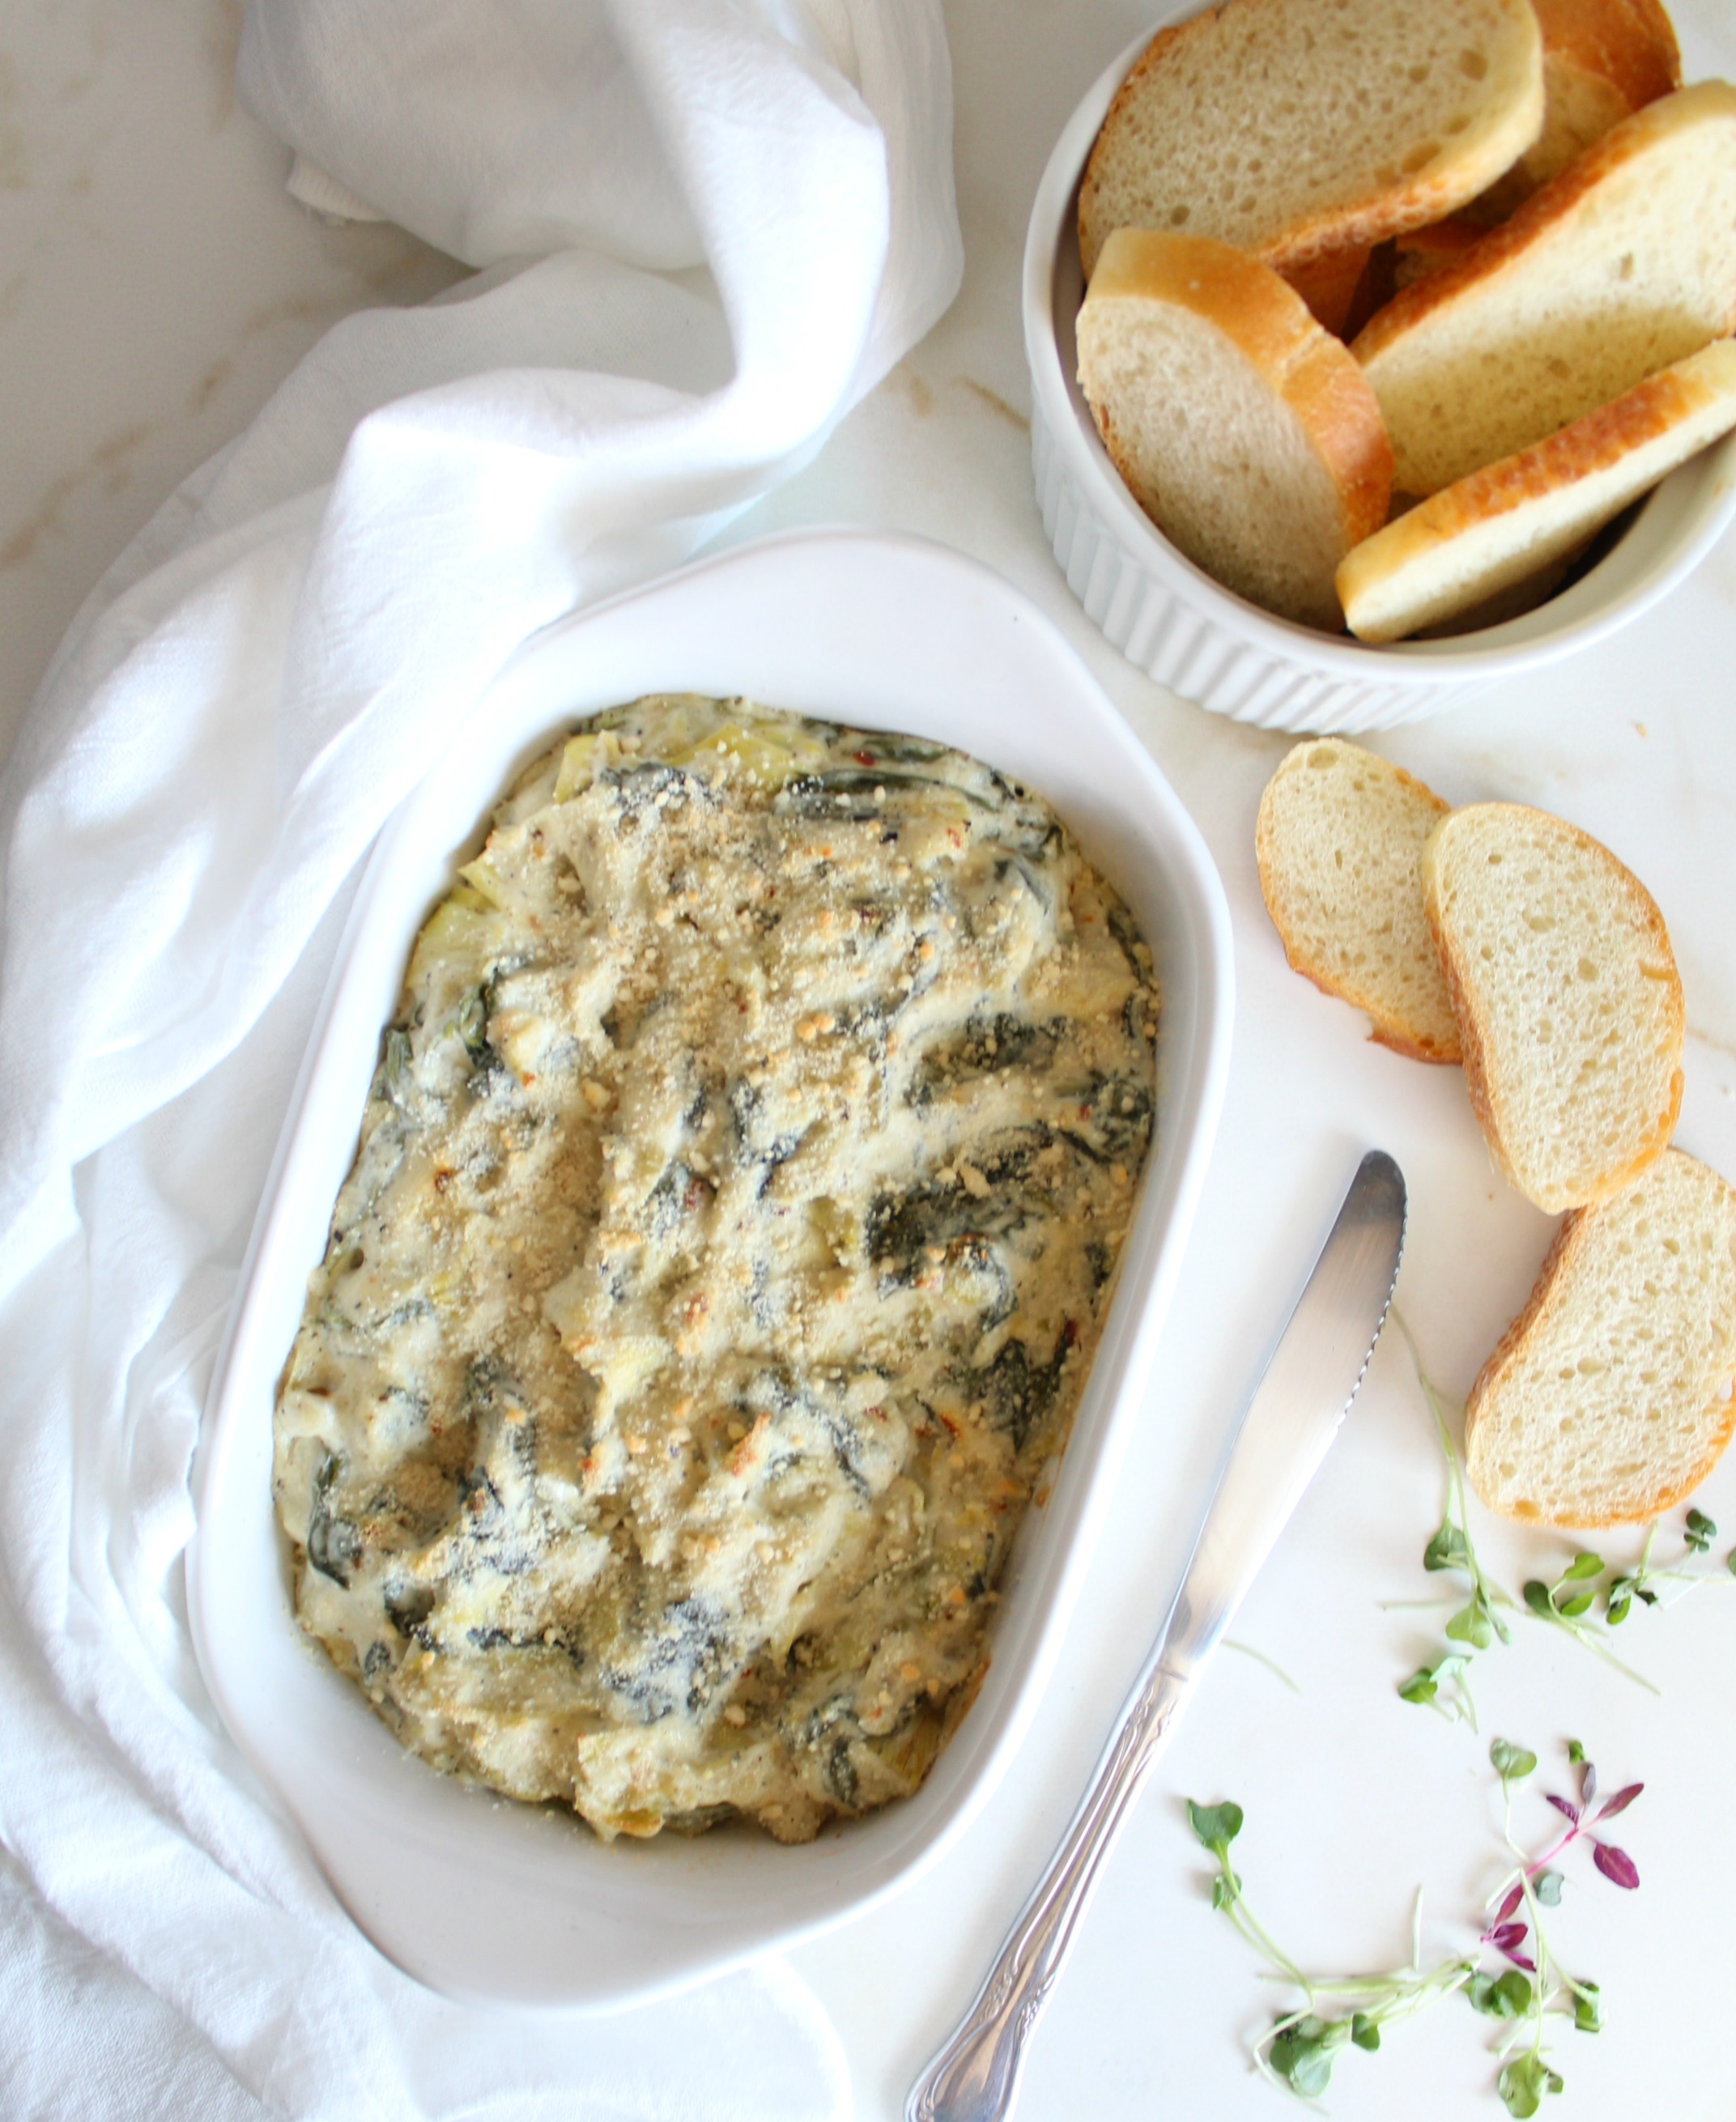 This Vegan Baked Spinach Artichoke Dip is creamy, cheesy and yes, it's vegan!   ThisSavoryVegan.com